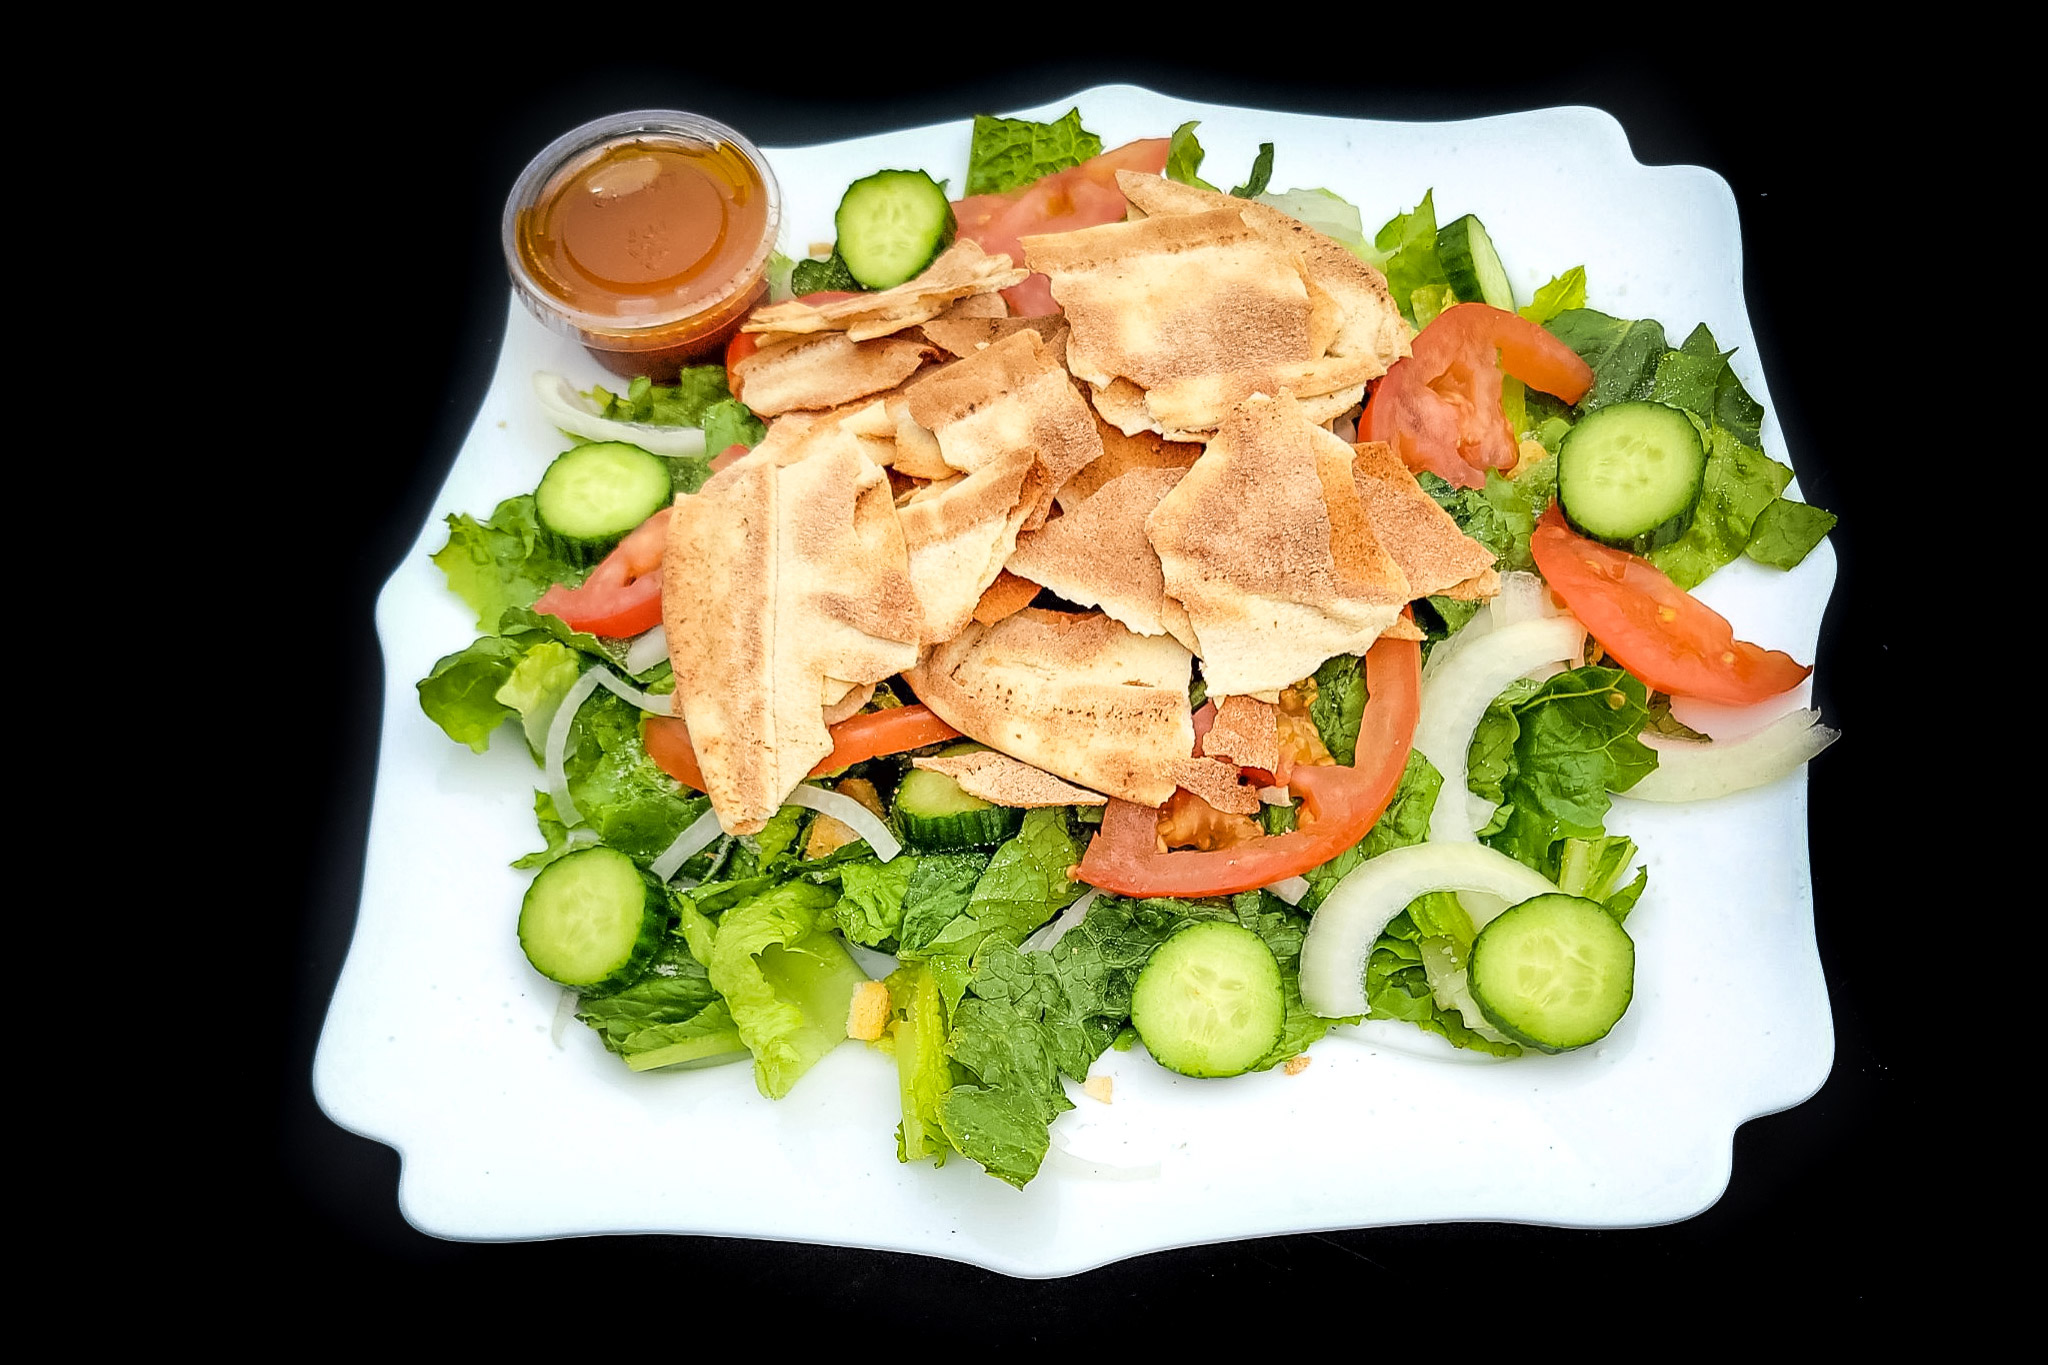 Fatouch Salad